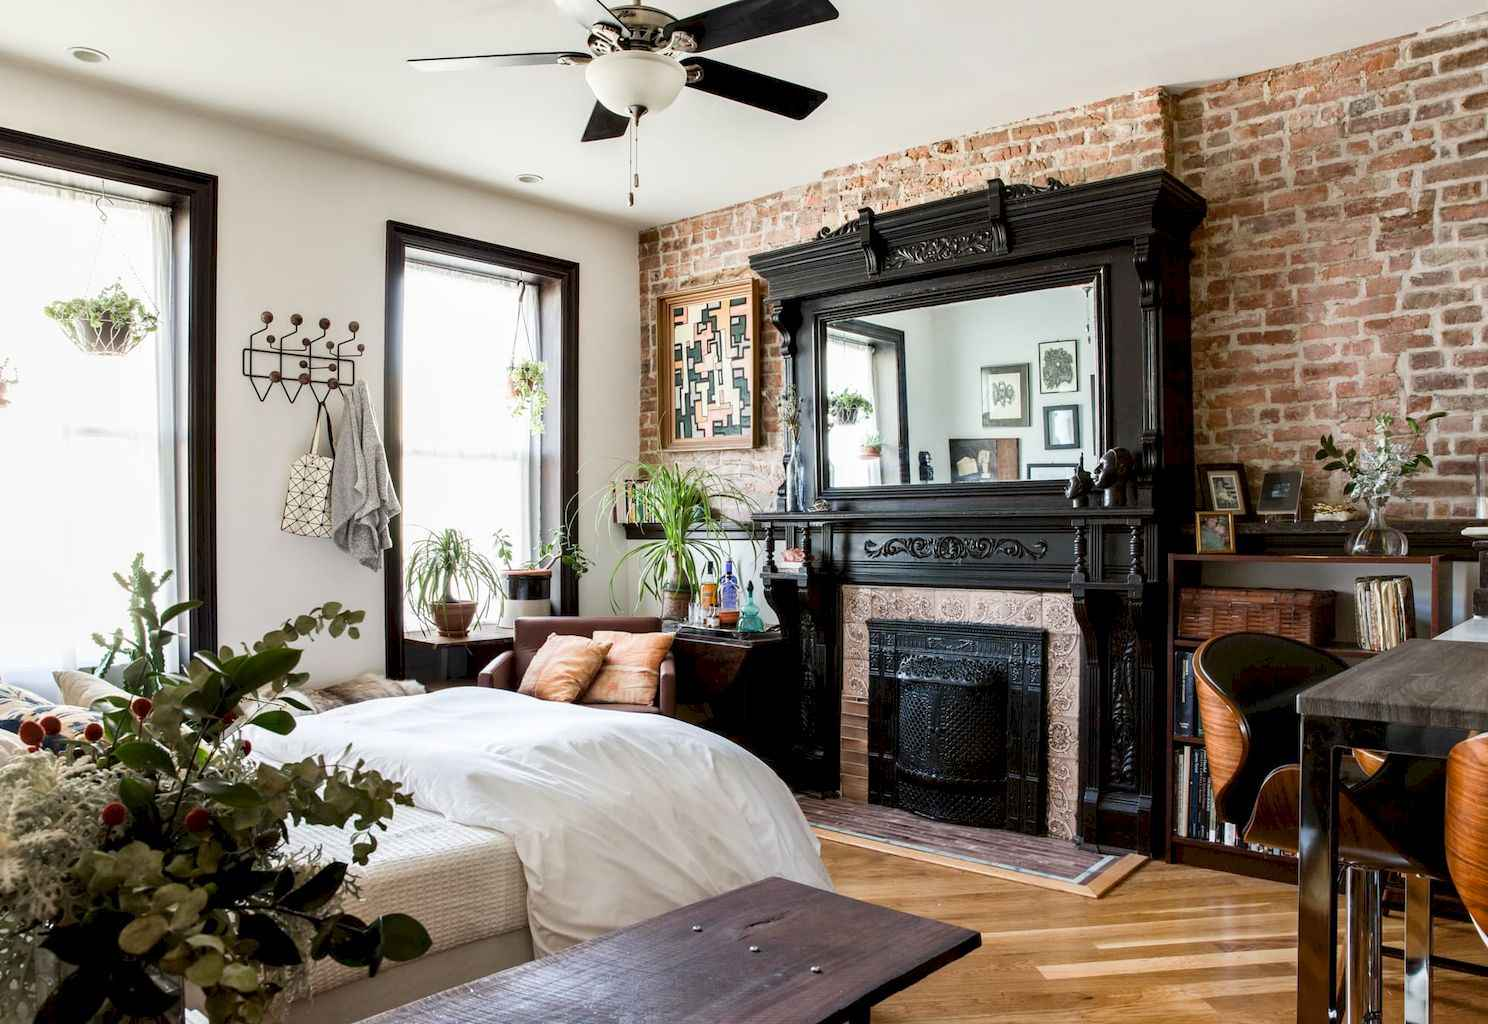 Cool small apartment decorating ideas on a budget (18)